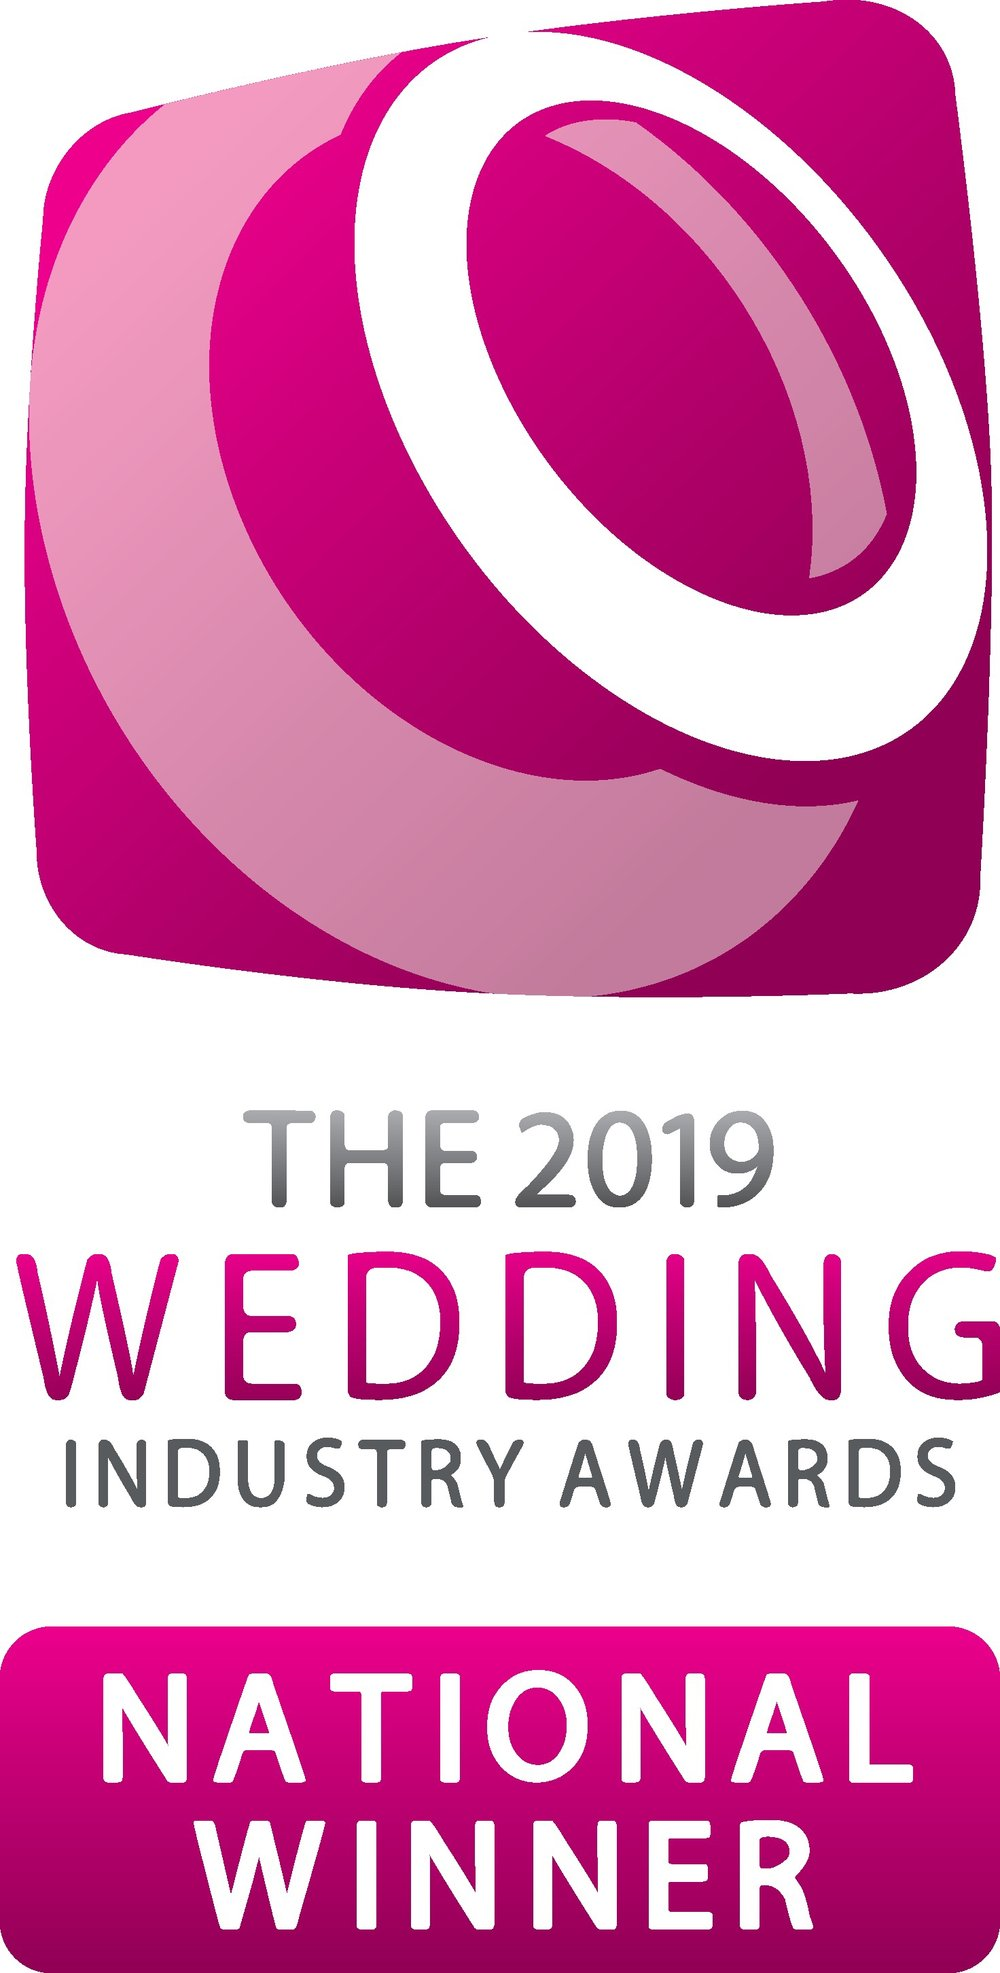 NATIONAL WINNERS OF THE WEDDING INDUSTRY AWARDS 2019 -